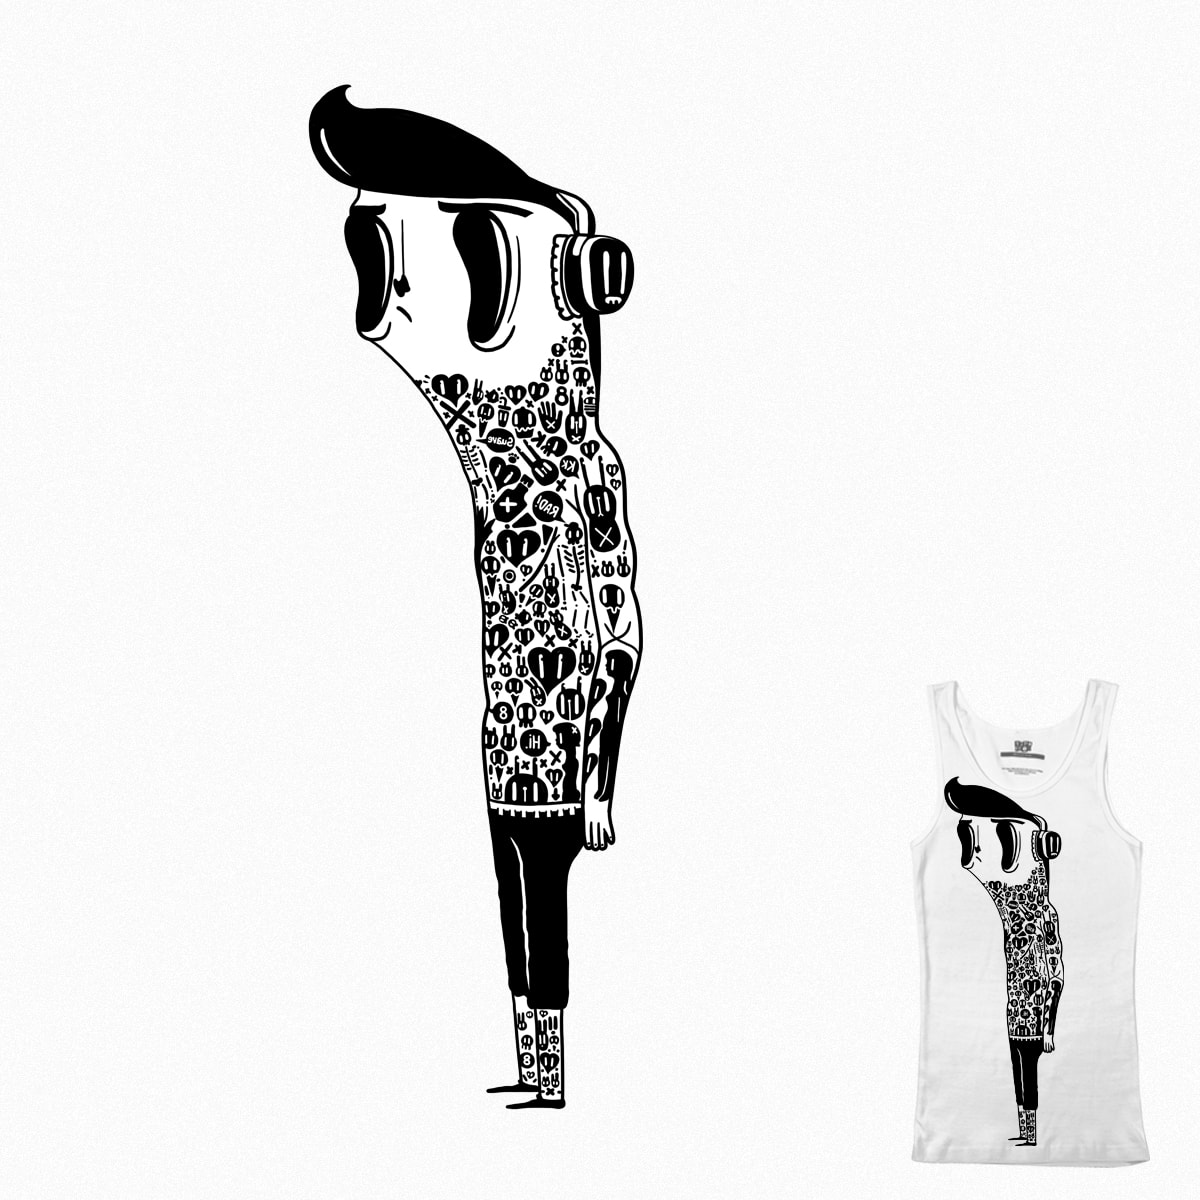 Tattoo guy by Radletimtam on Threadless